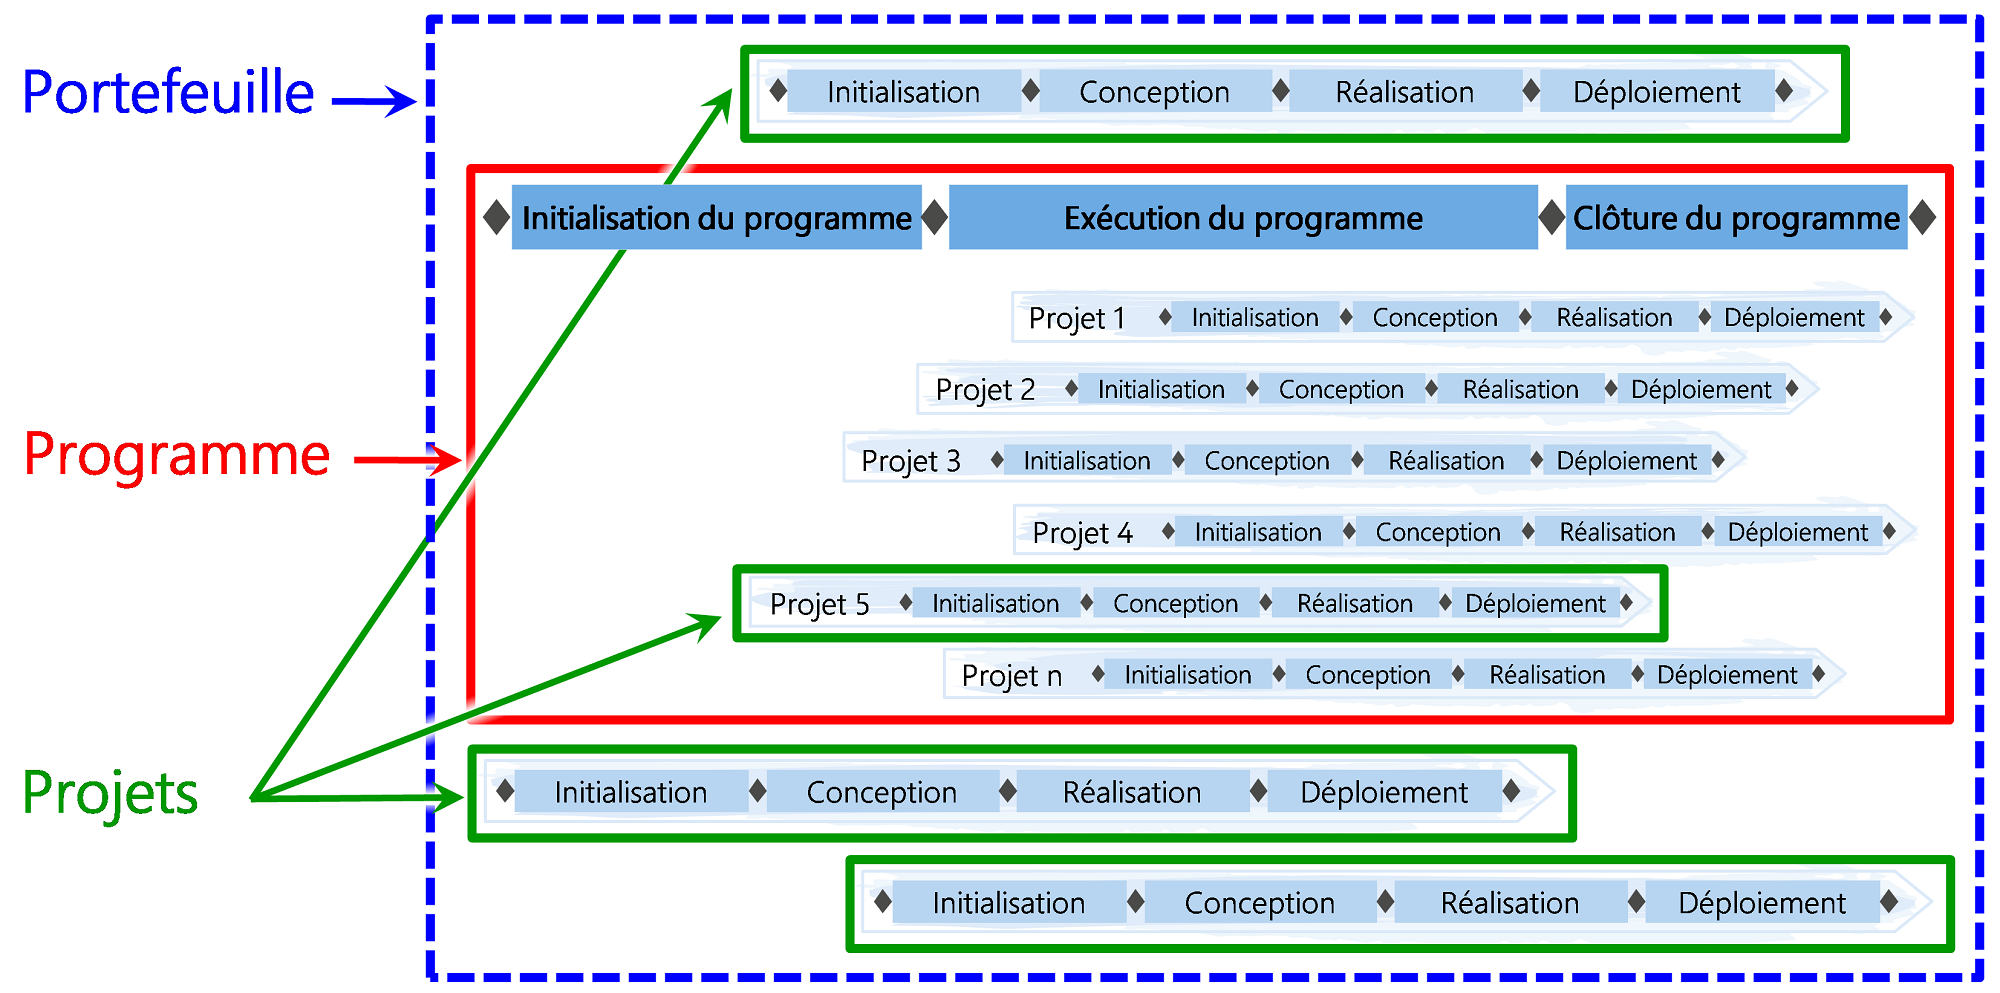 Figure 1: Positionnement de la gestion de programme